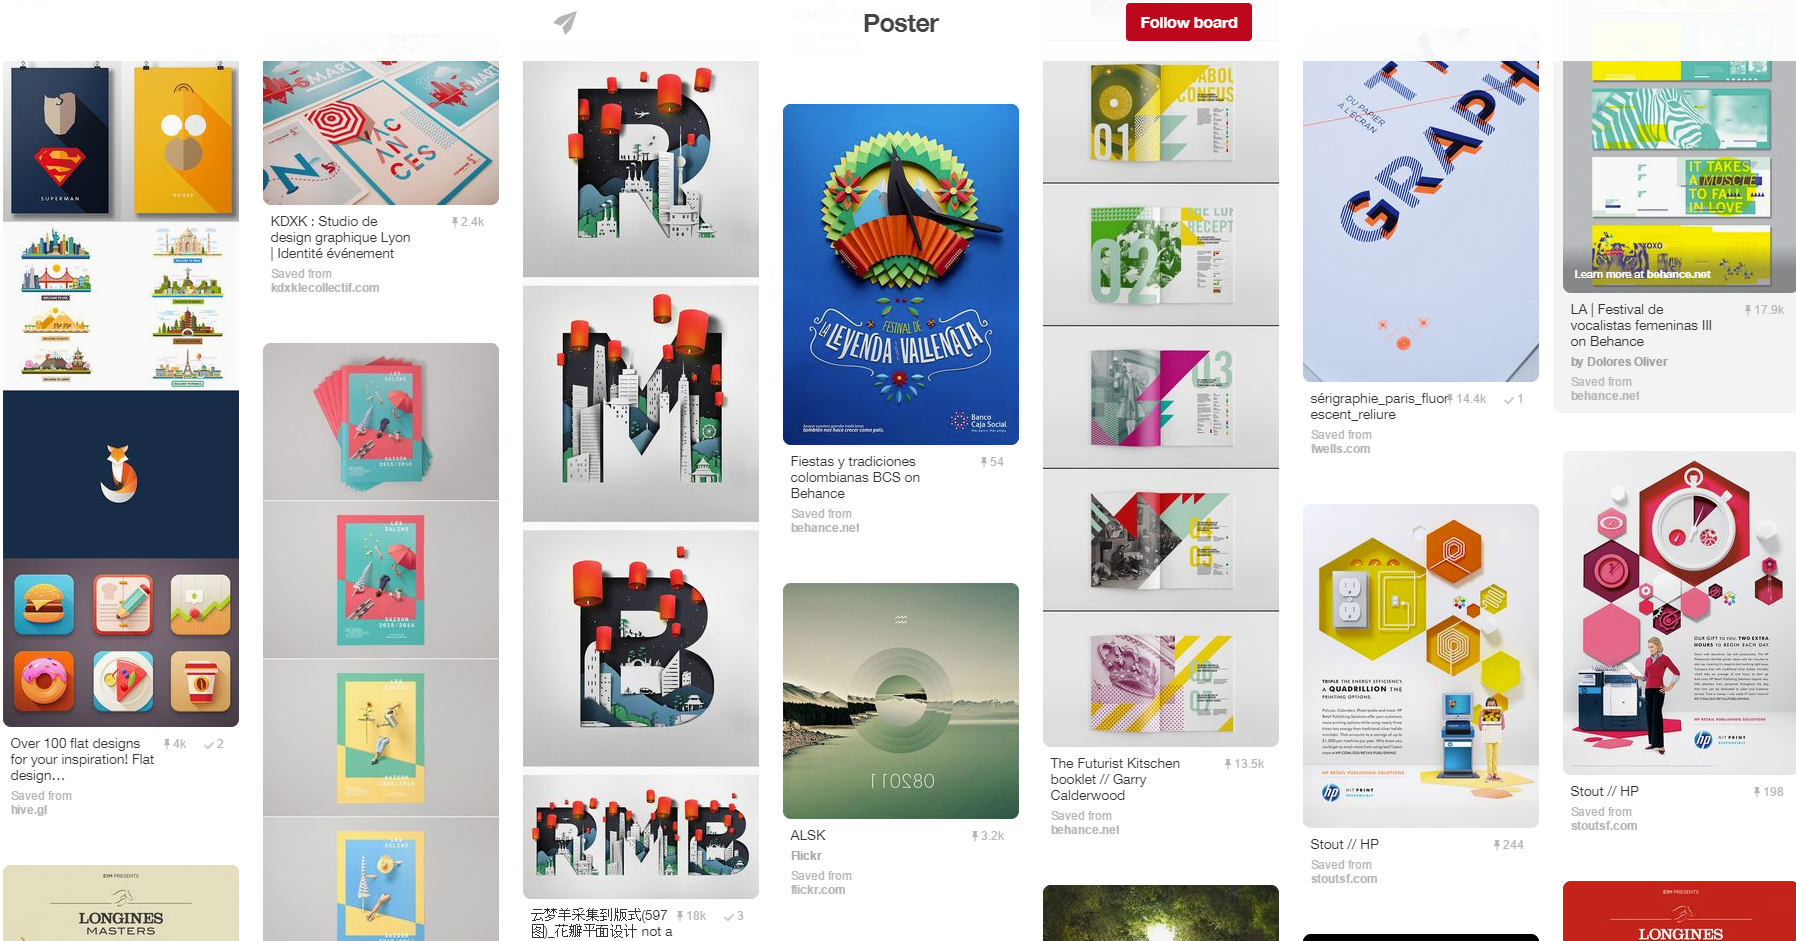 15 inspiring design boards to follow on pinterest graphicmama blog